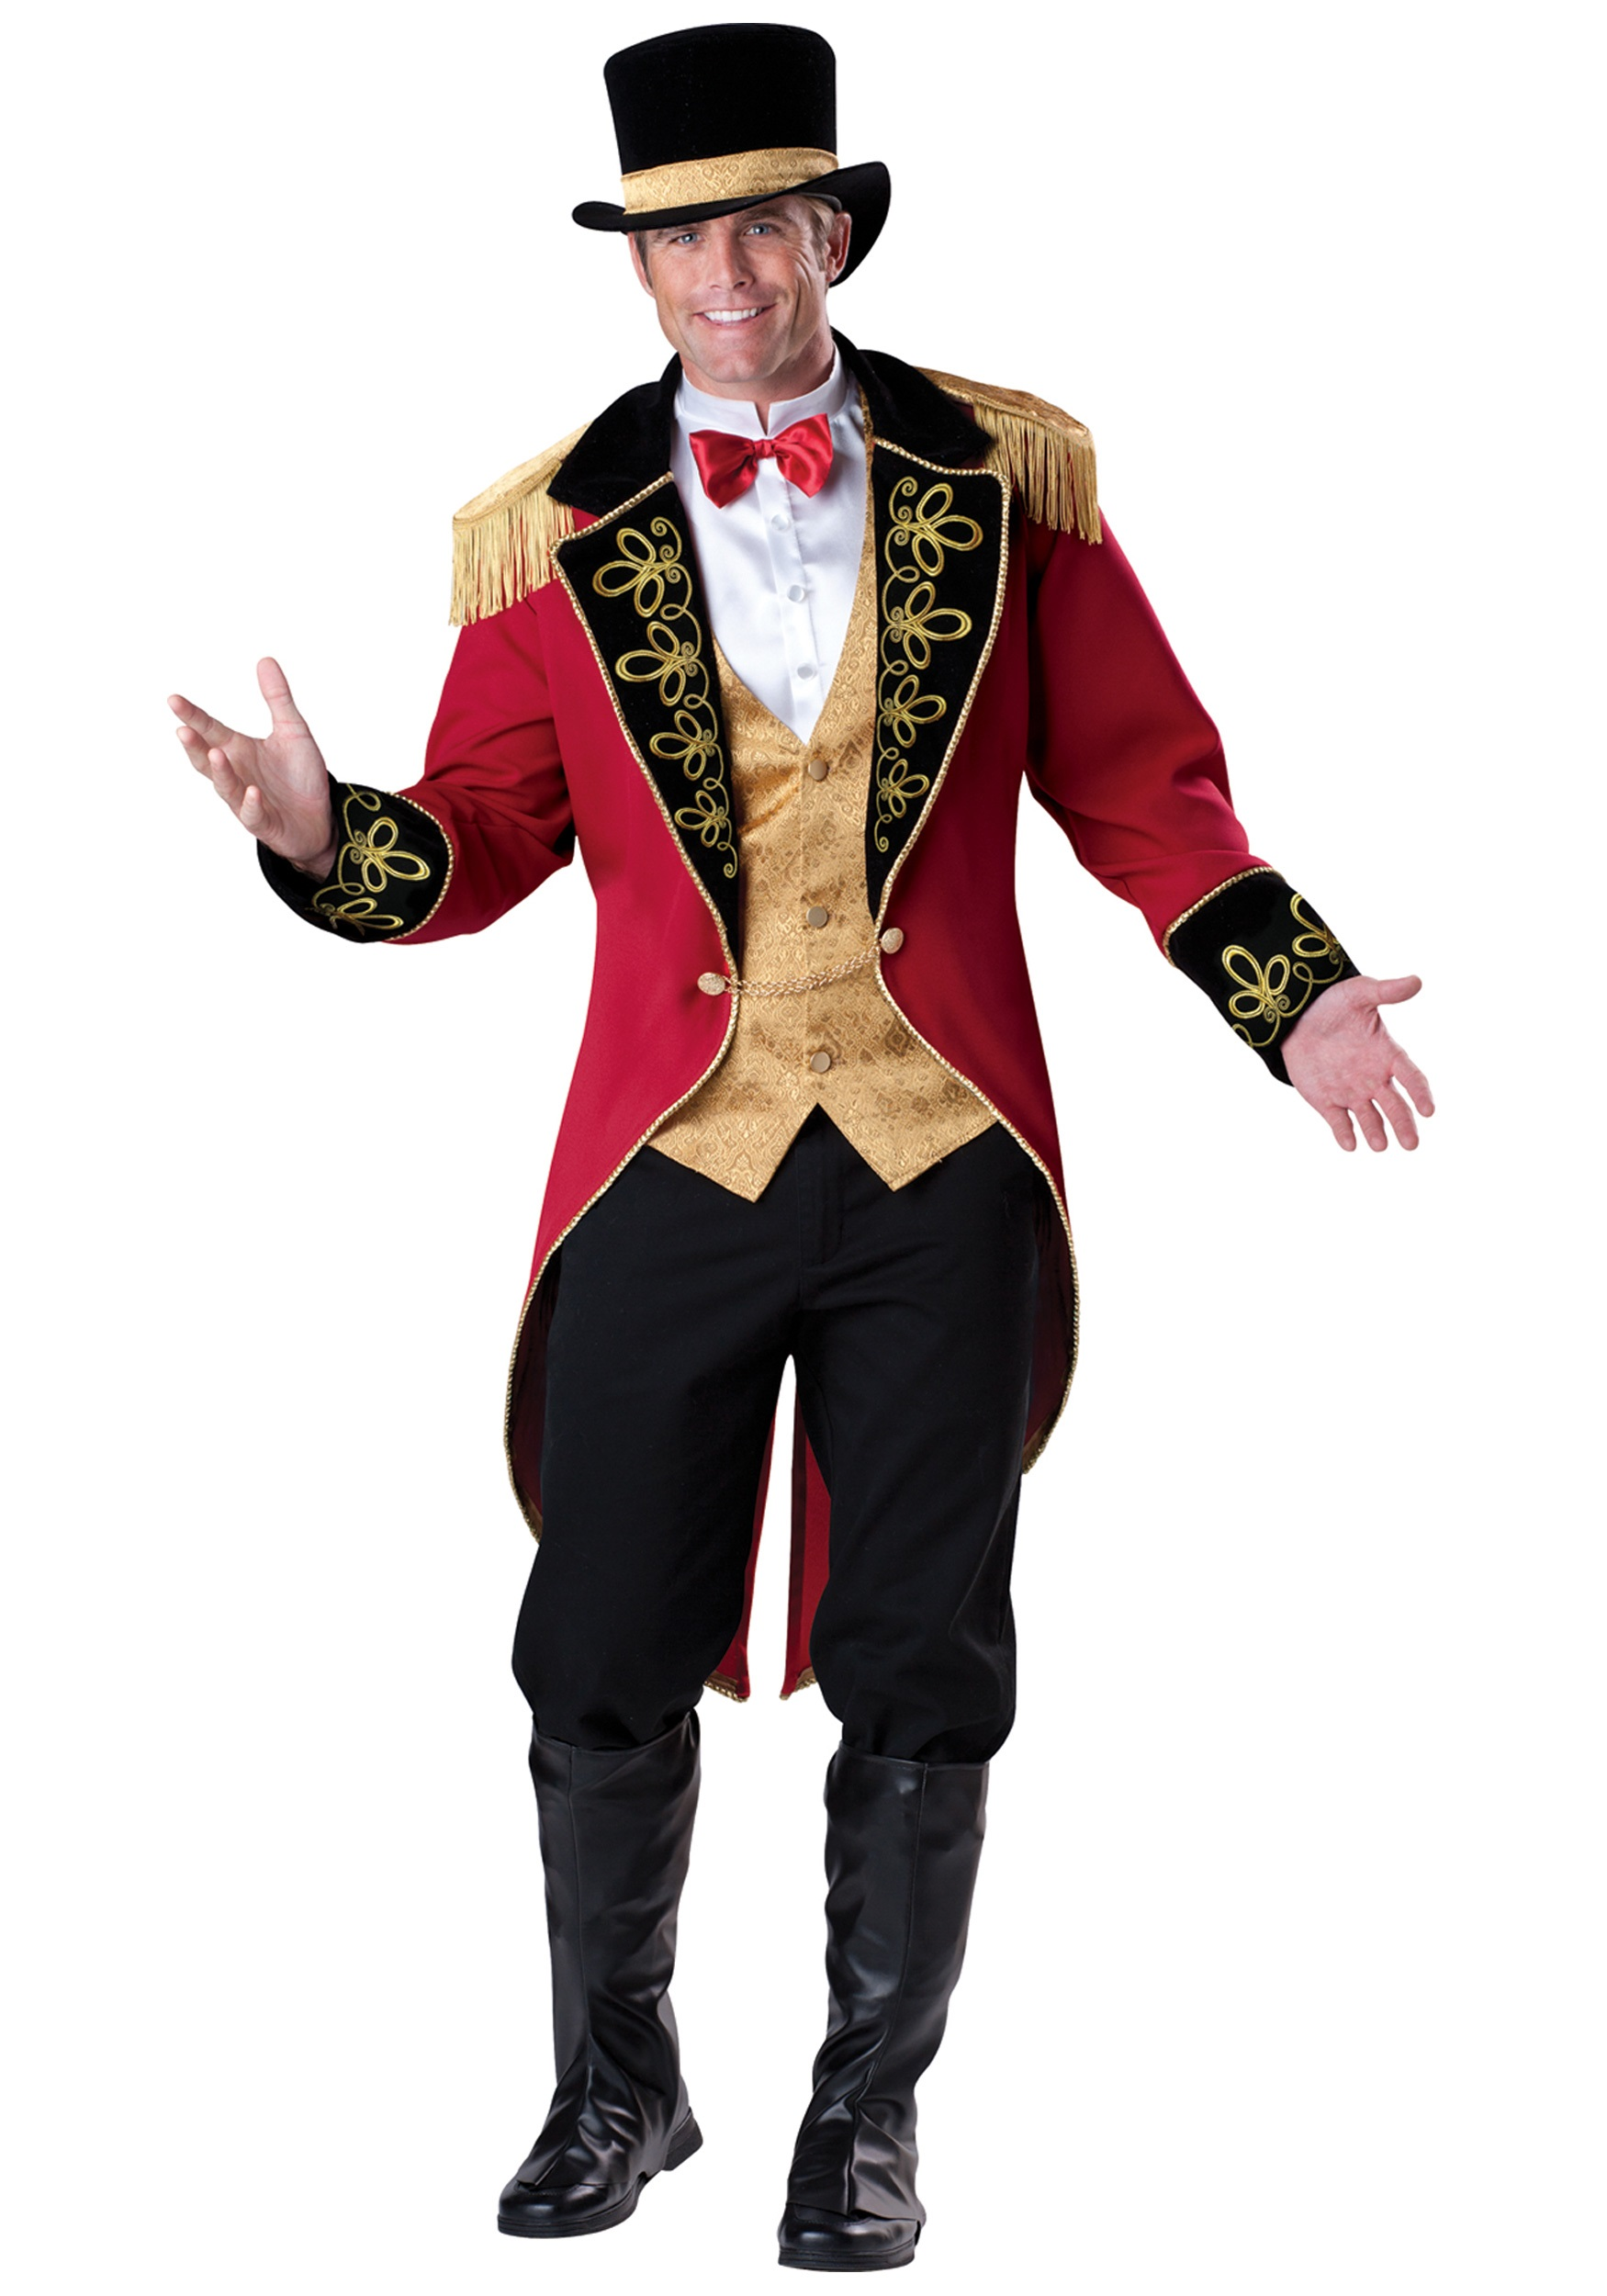 Man Deluxe Ringmaster Costume Magician Party Circus Lion Tamer Tuxedo Fantasy Dress Outfit